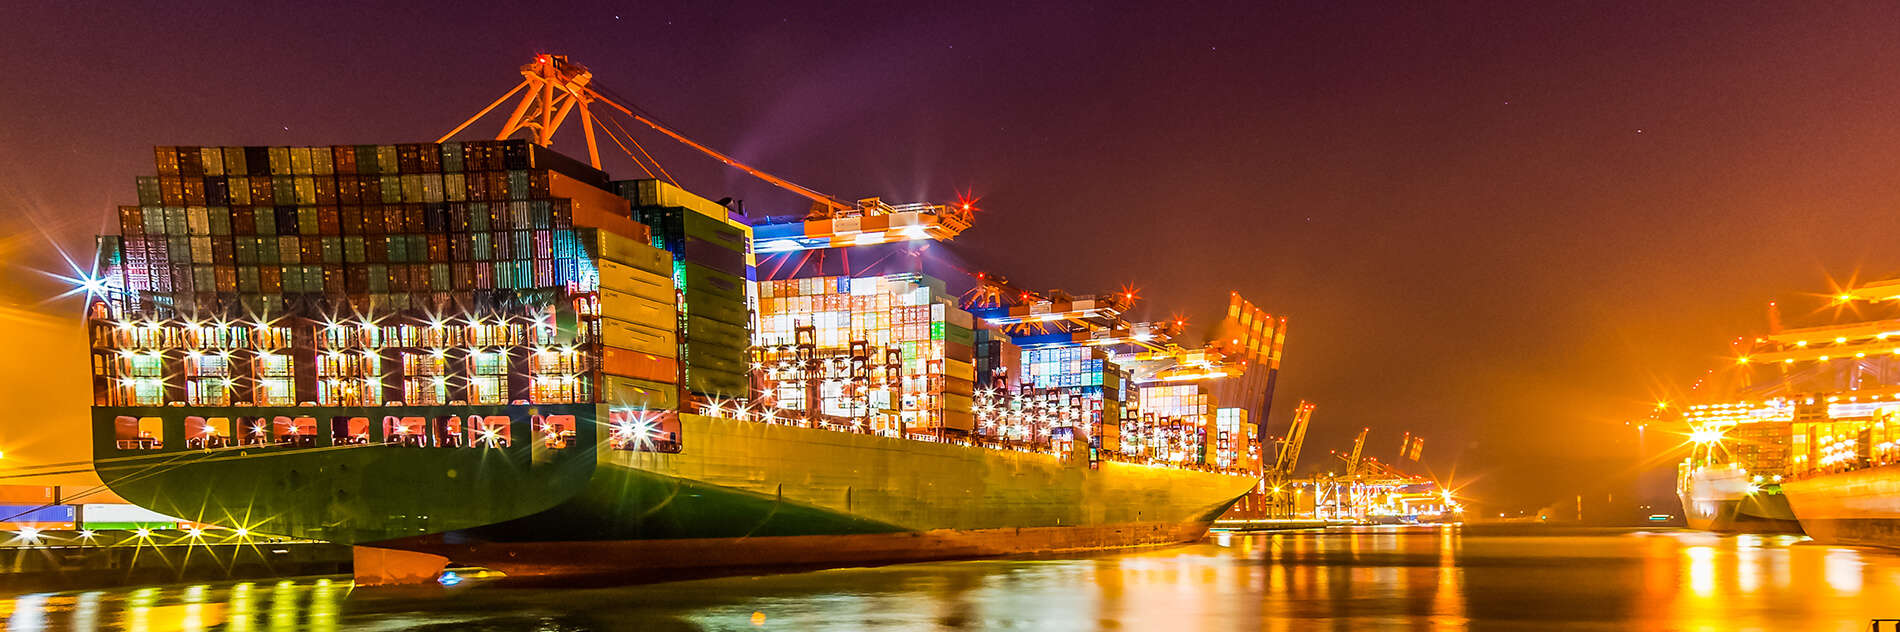 A huge international cargo ship anchored at port during a night time loading session